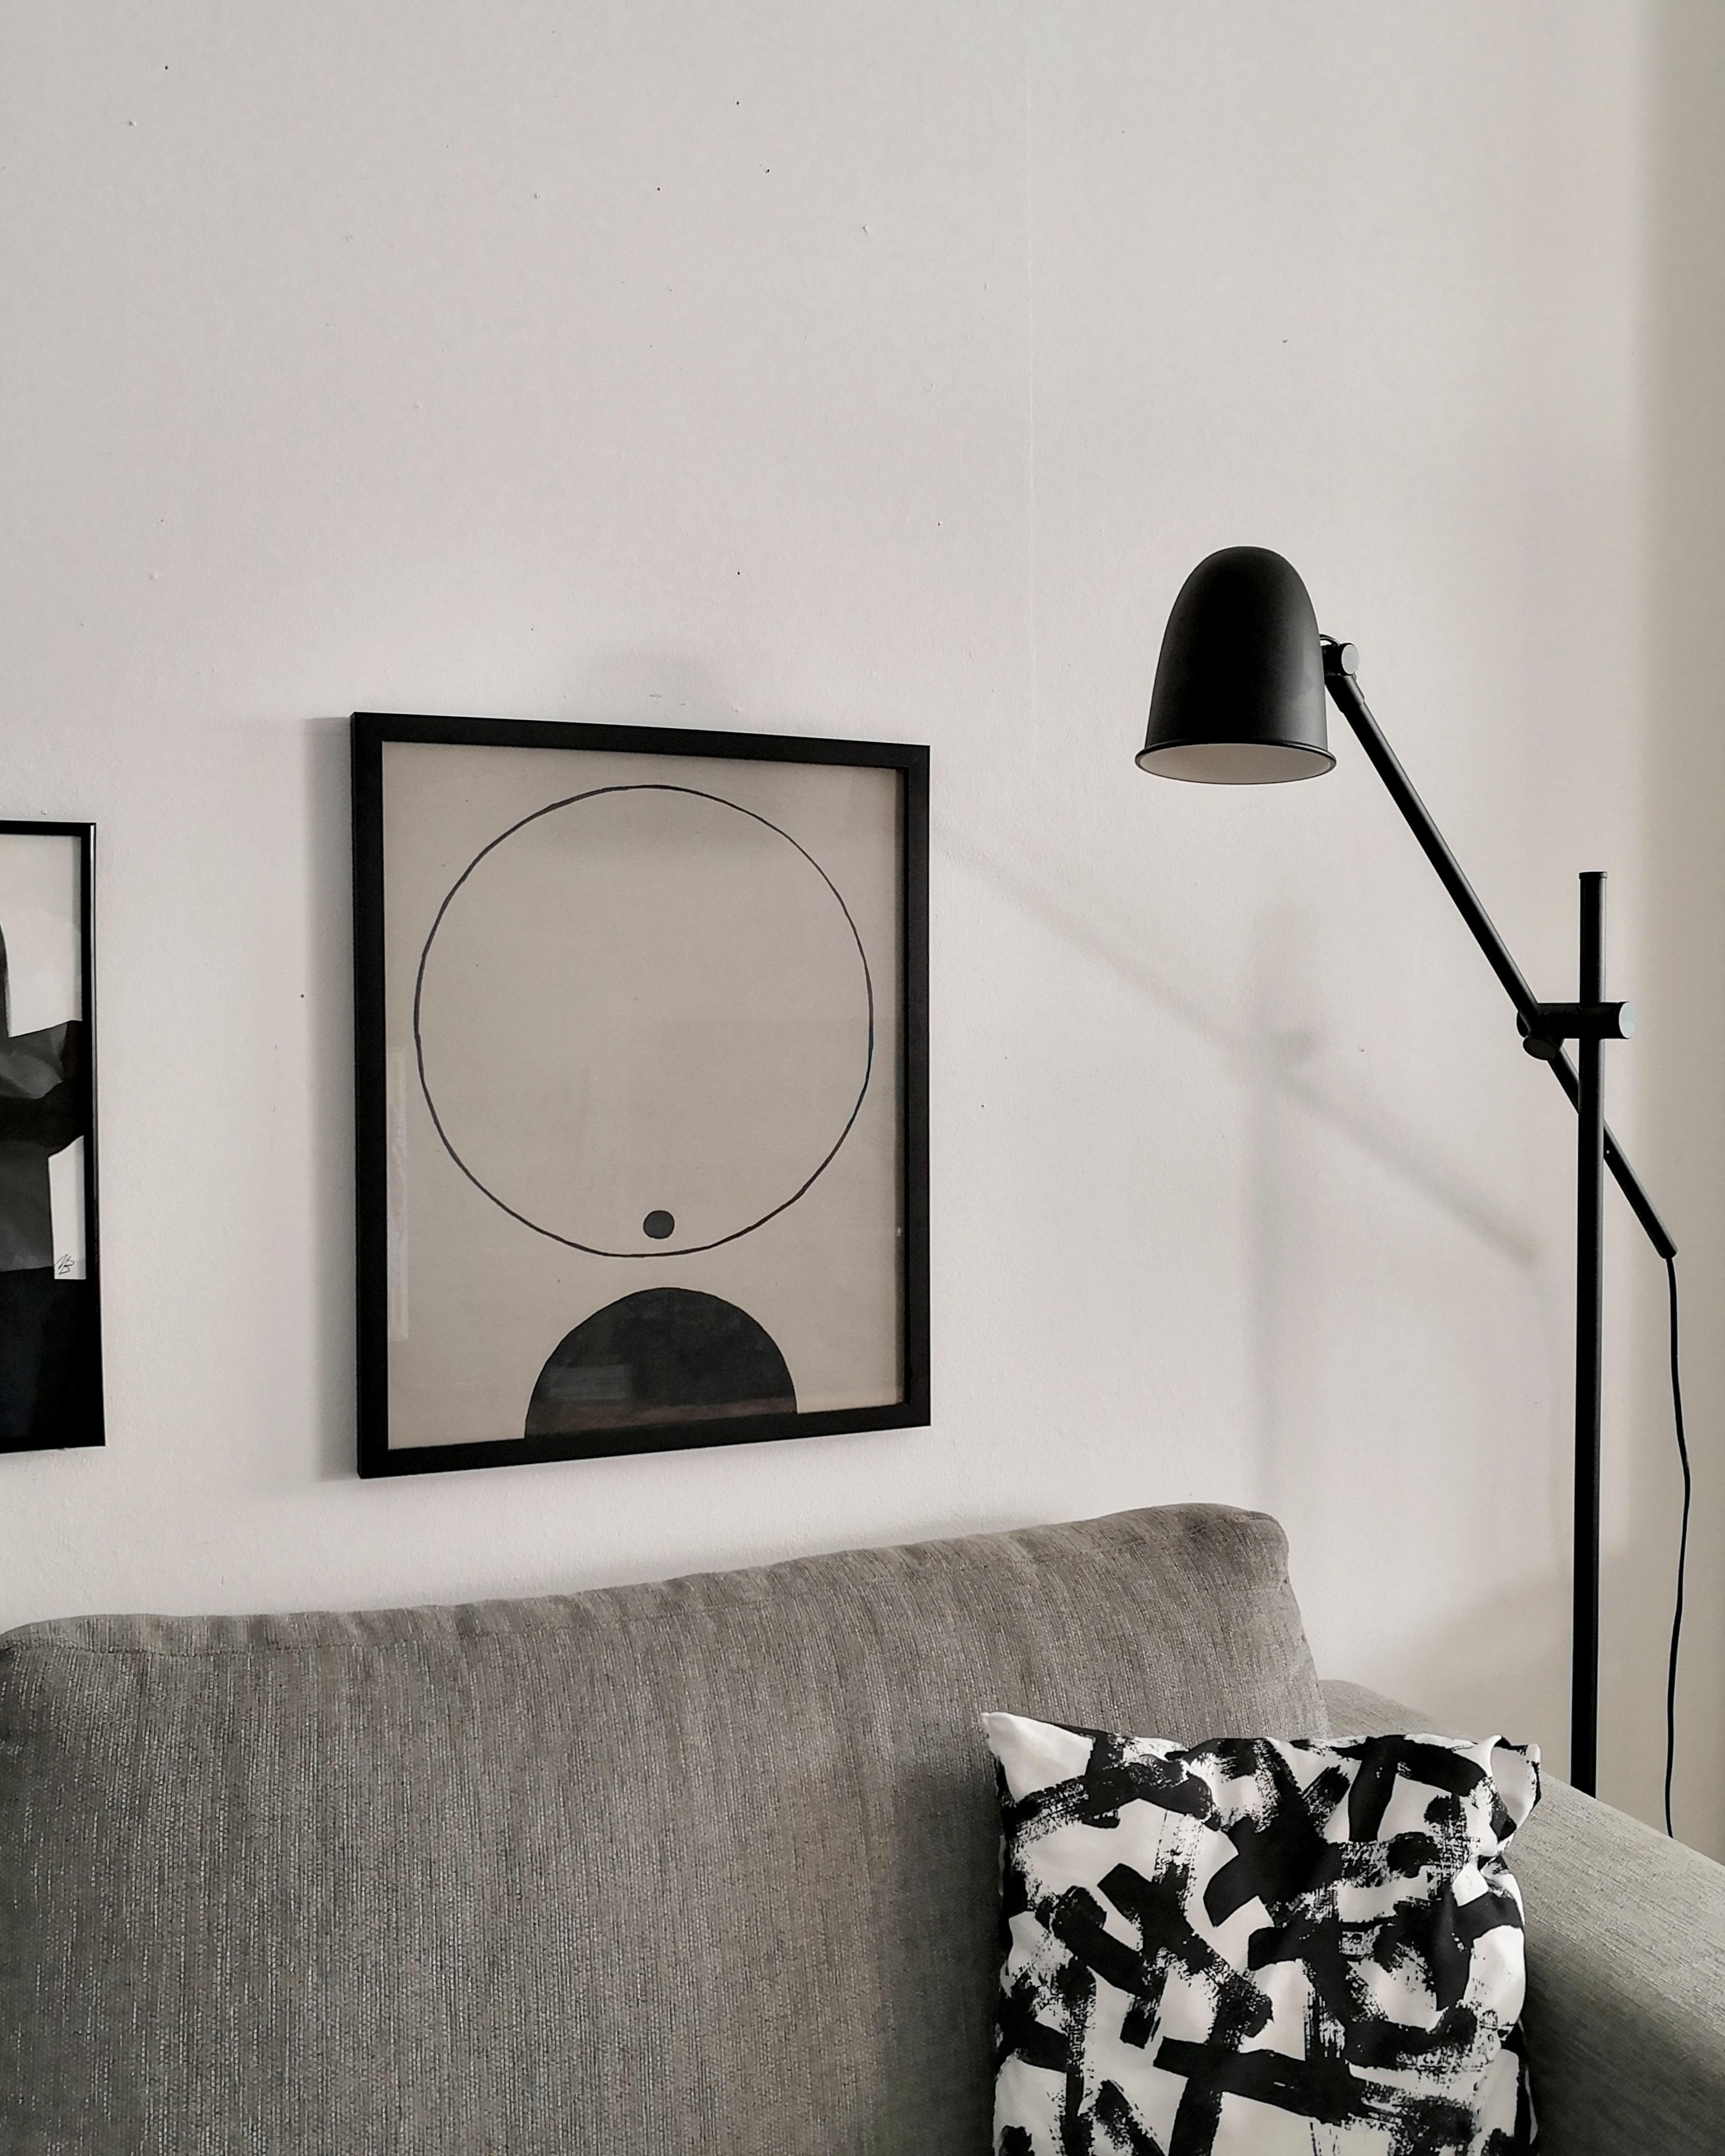 #simpleartwork #simplicity #diy #greyhome #livingroom #art #wohnzimmer